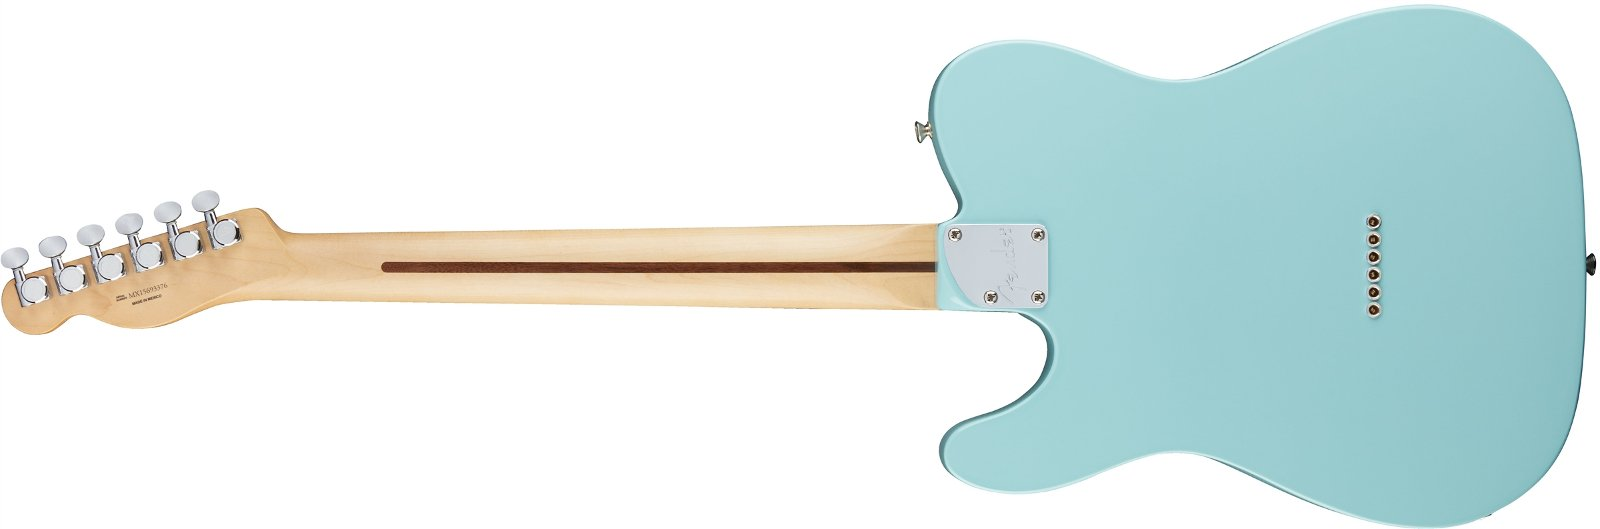 Electric Guitar, Daphne Blue Finish